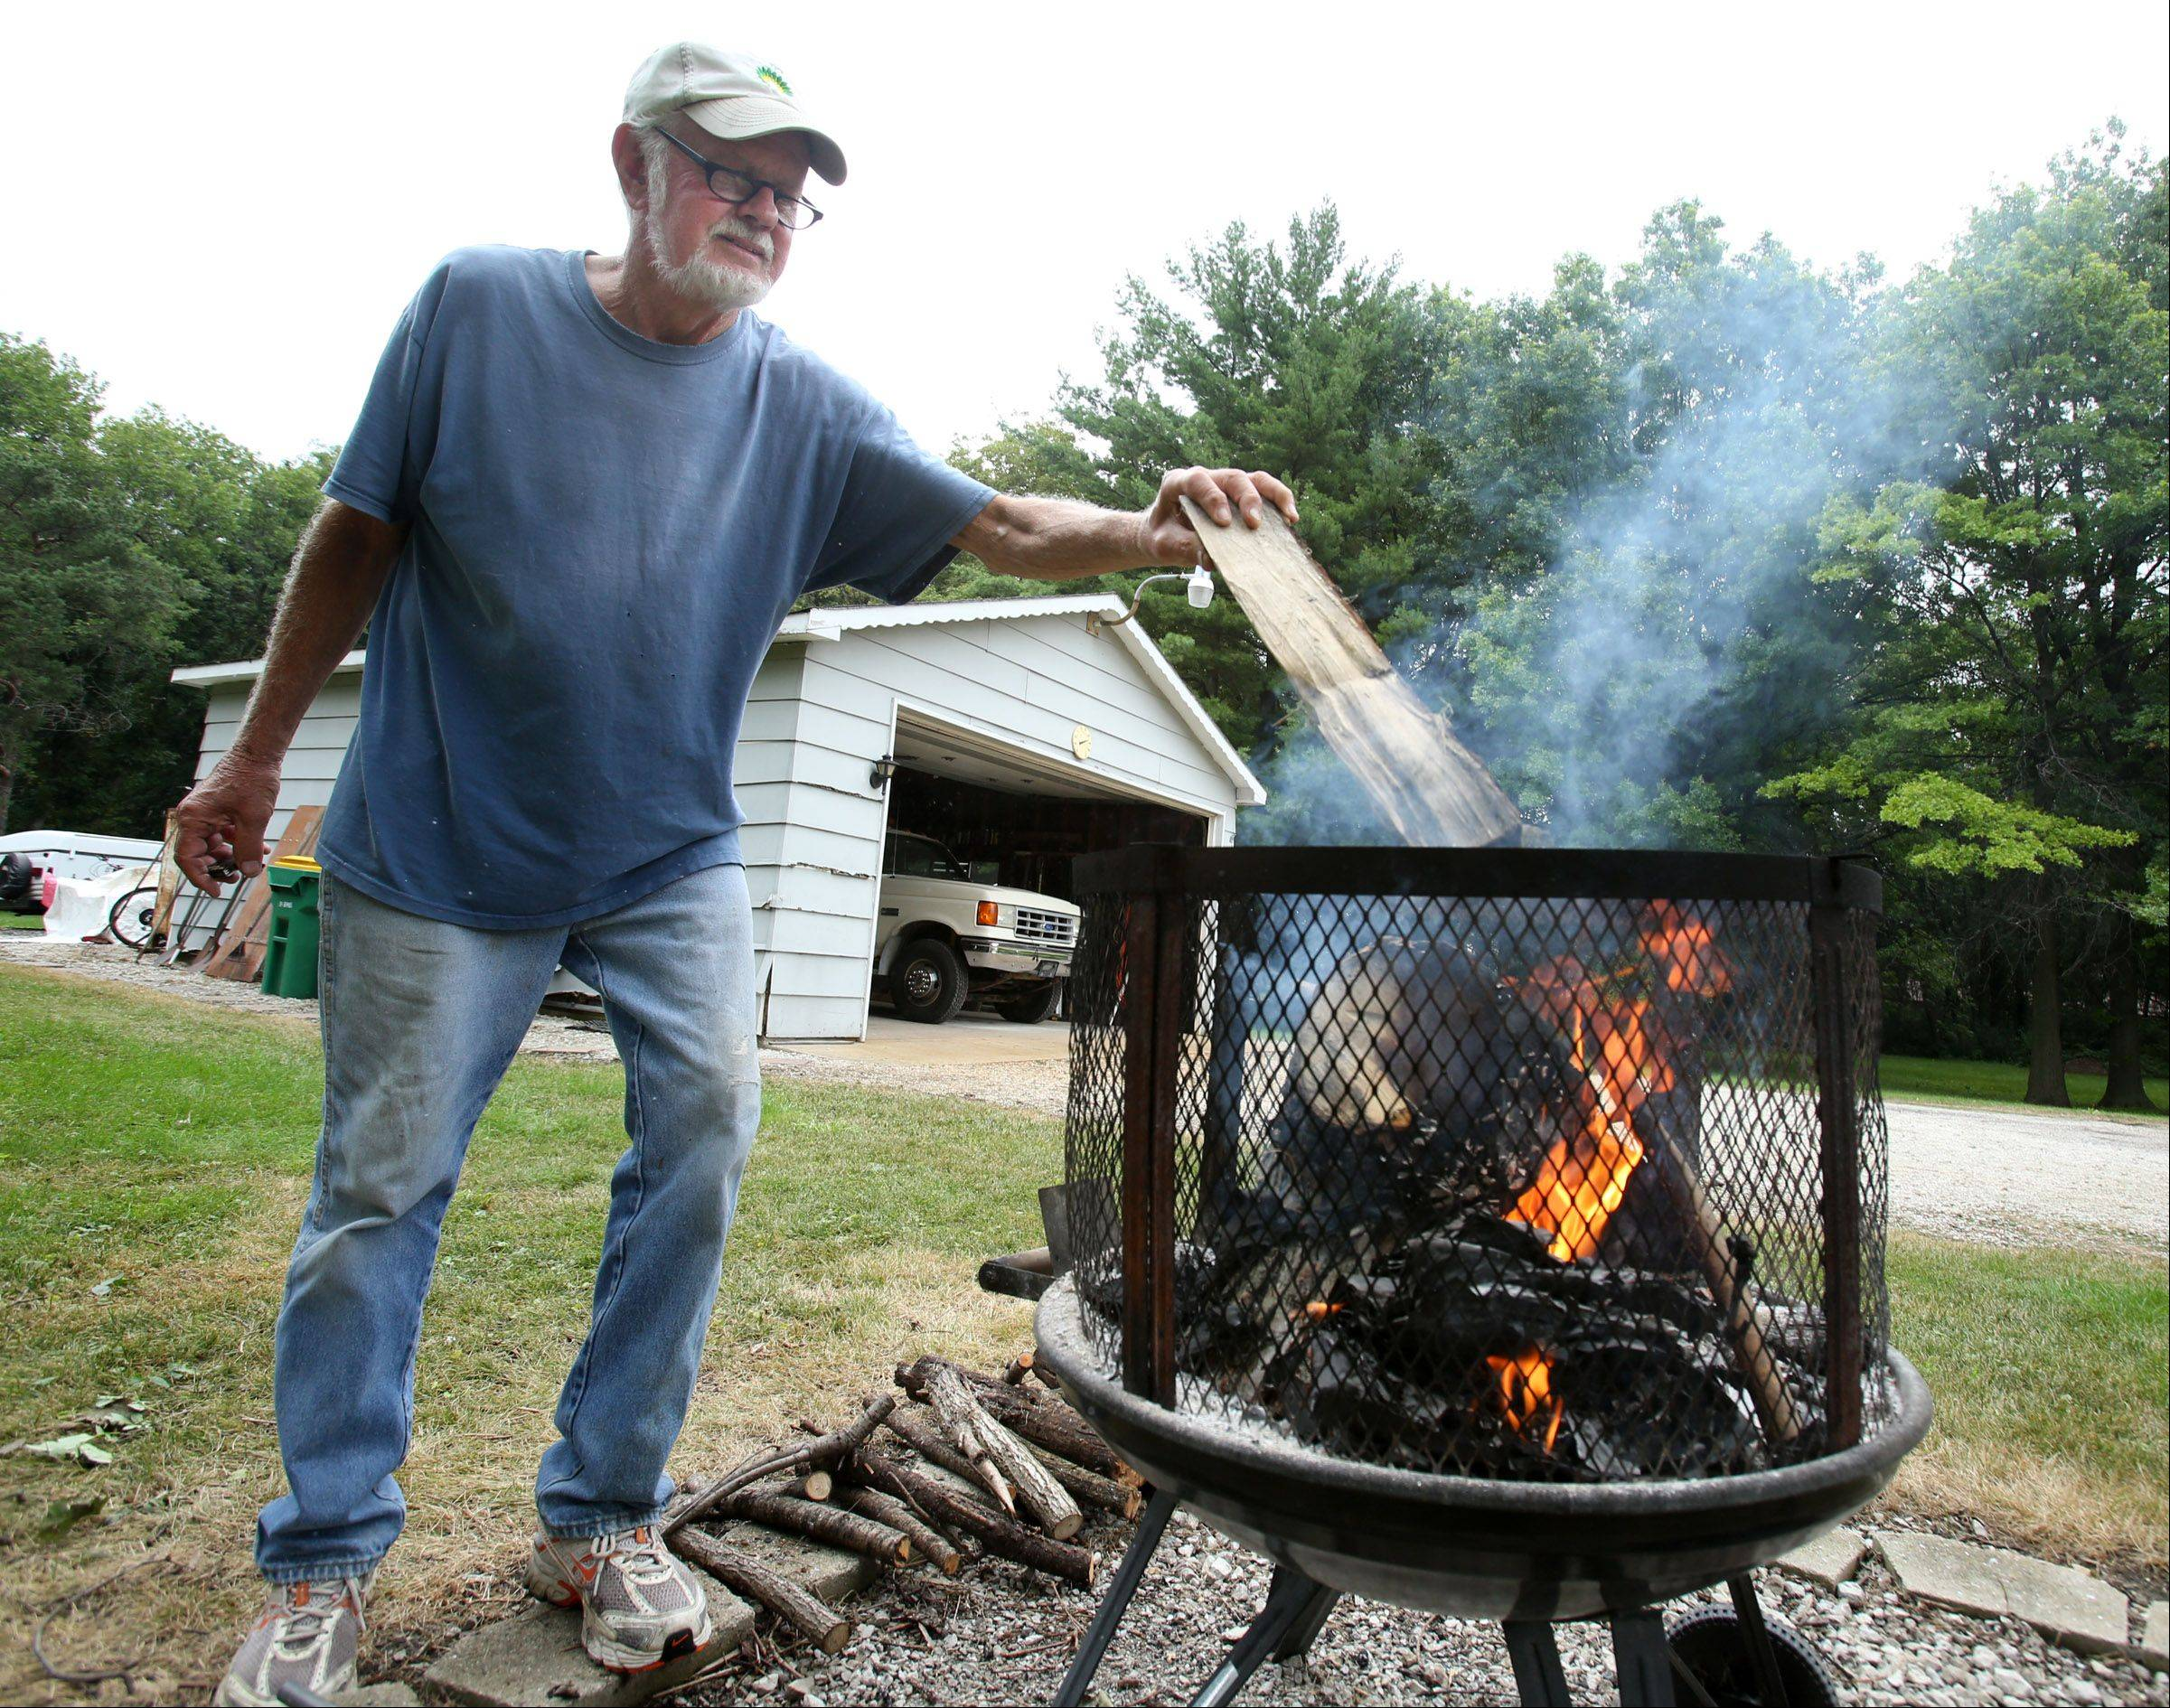 WP McRaven places small branches, from a tree he cut down earlier in the year, on an enclosed fire pit in his Wheeling backyard Wednesday. McRaven said he was burning the wood because he likes the smell while working in his yard, but admits he wouldn't be burning the wood if it was above 80 degrees.